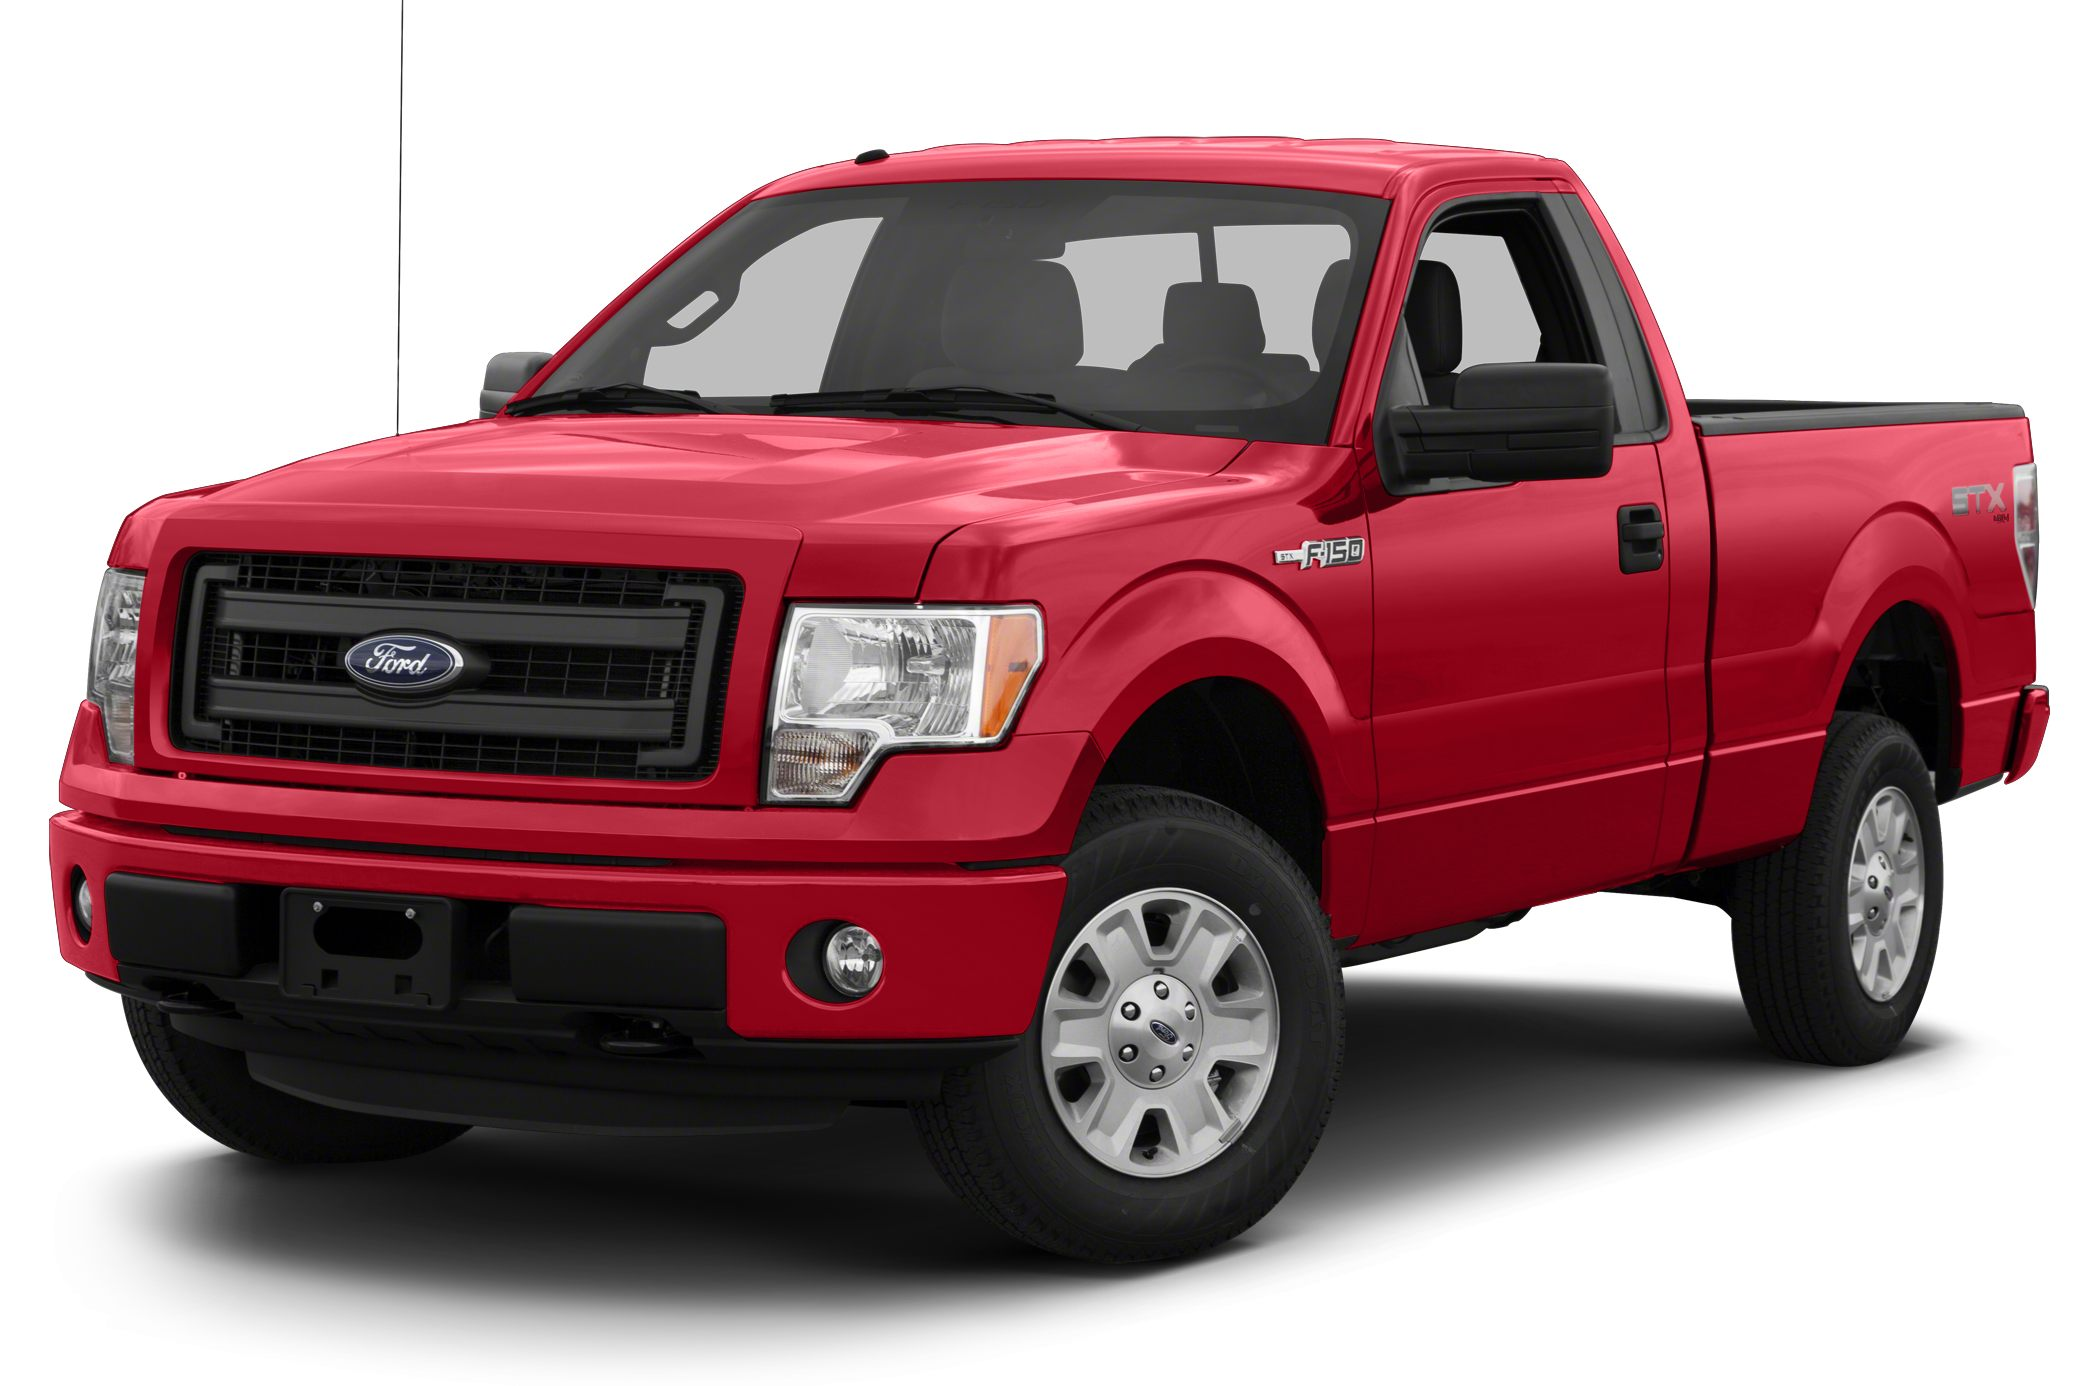 2013 Ford F150 XLT Crew Cab Pickup for sale in Charlevoix for $31,000 with 24,323 miles.